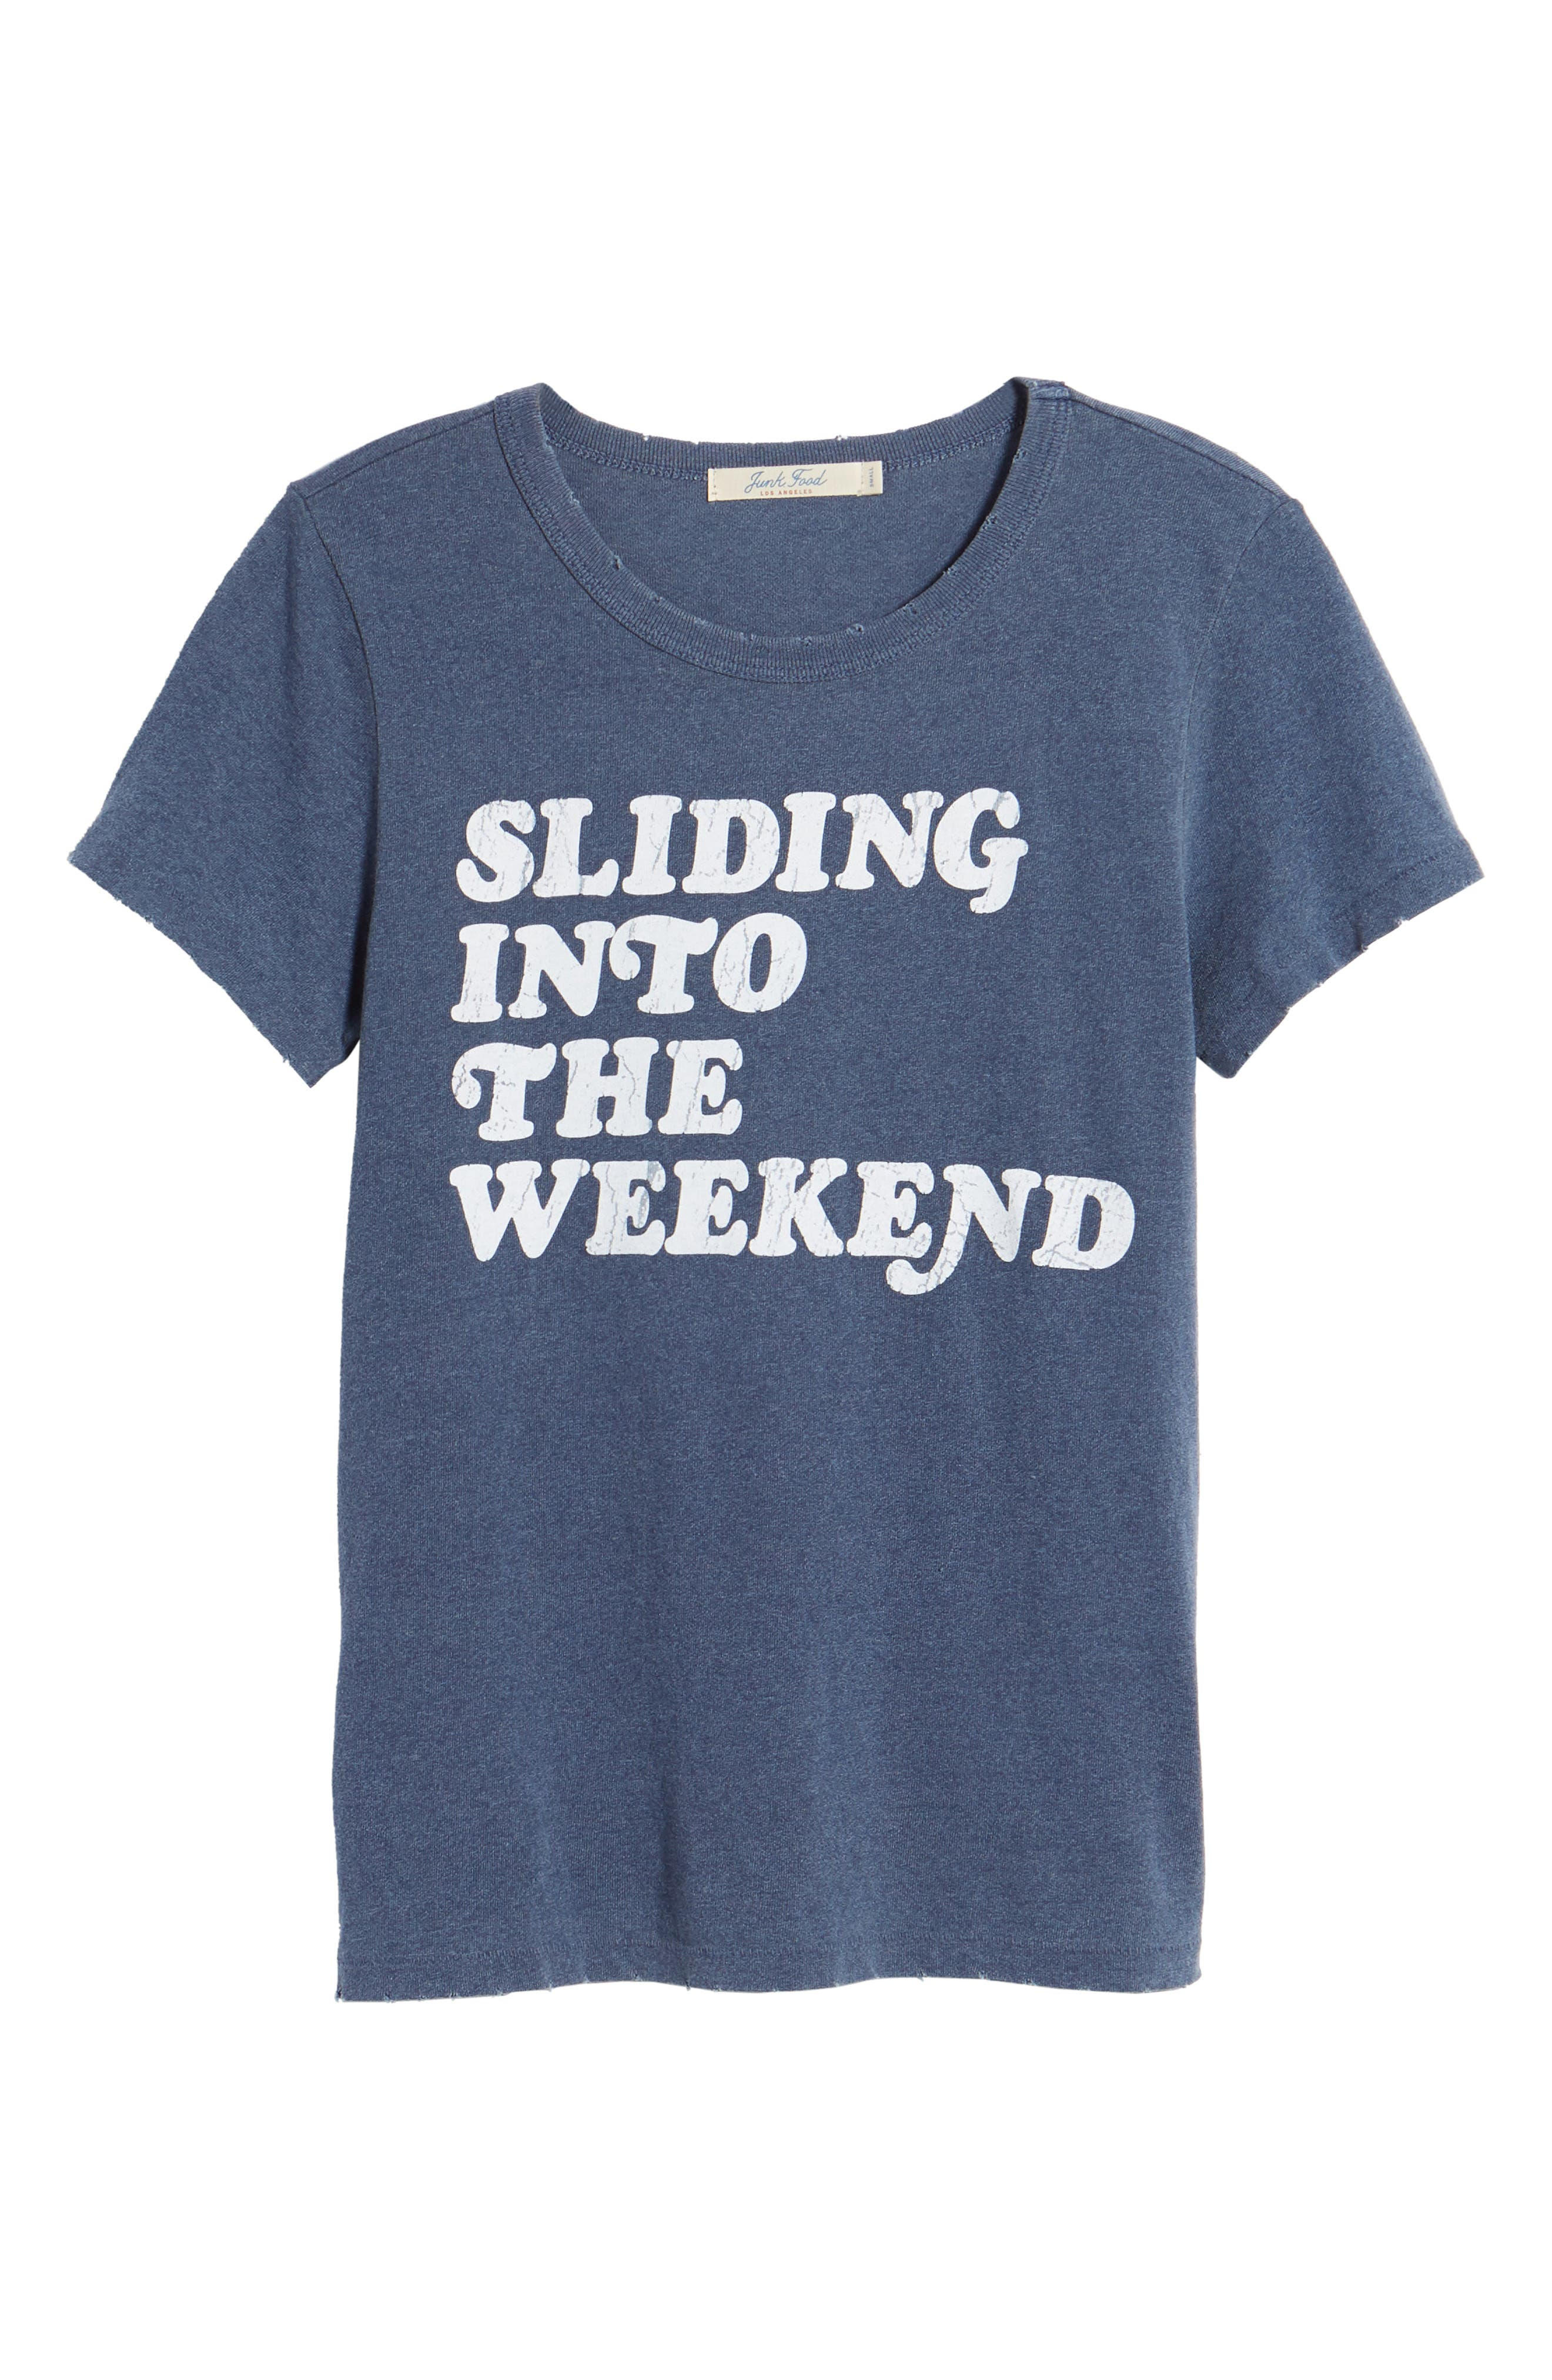 Sliding Into the Weekend Tee,                             Alternate thumbnail 7, color,                             408